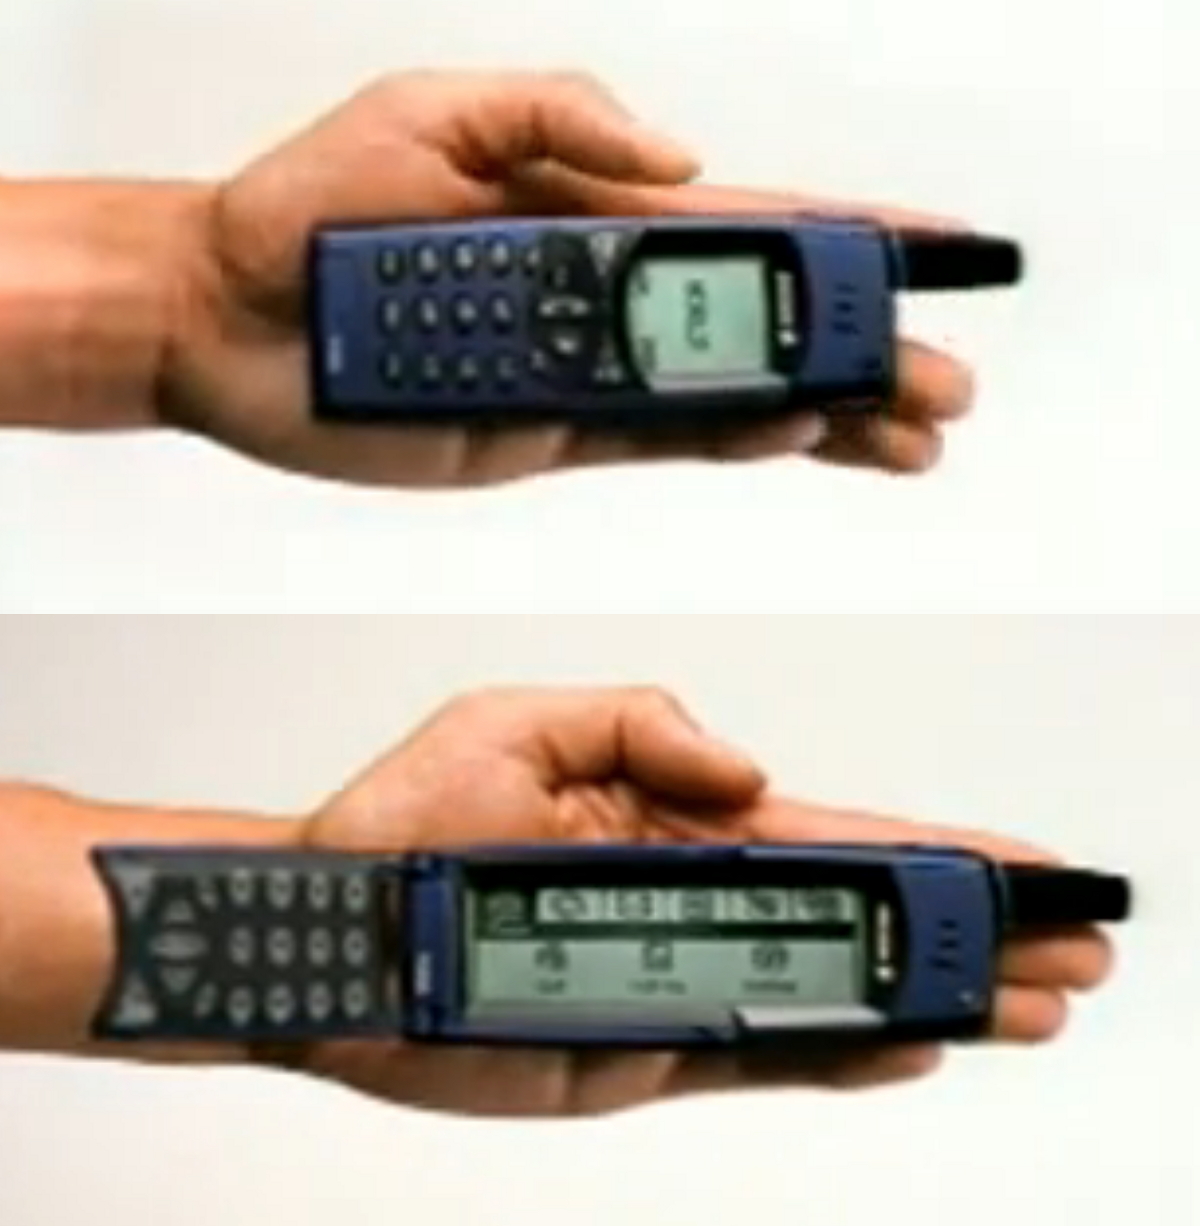 Stills from a commercial for the 2000 Sony Ericsson R380, with both physical keyboard and touchscreen. (Photo credit: Sony Ericsson).